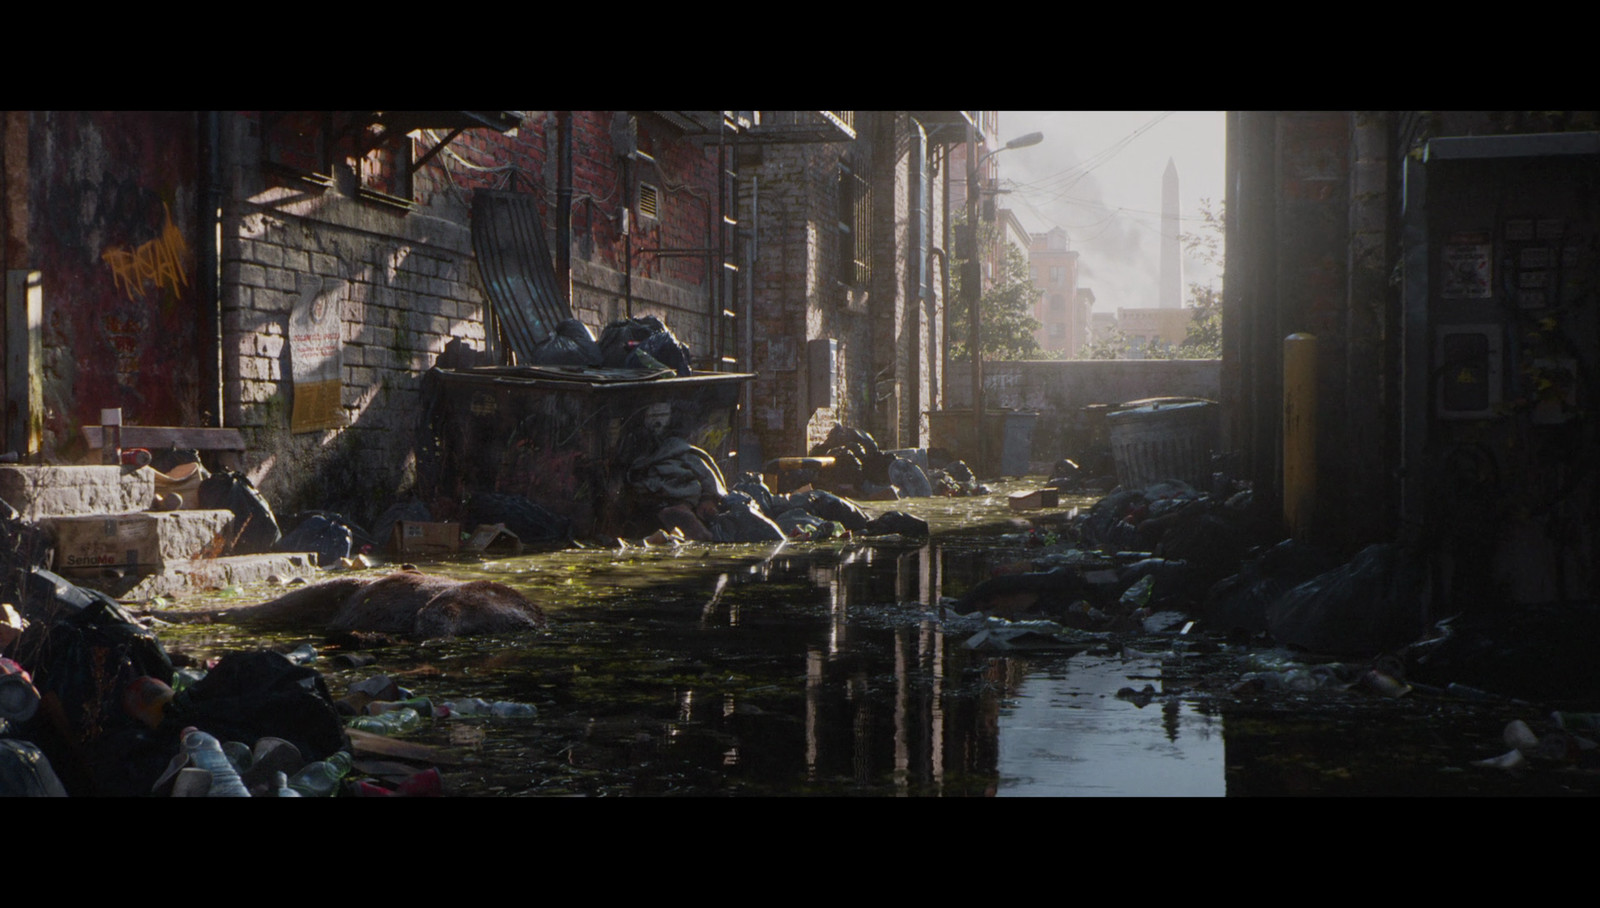 Back alley, screenshot from cinematic.